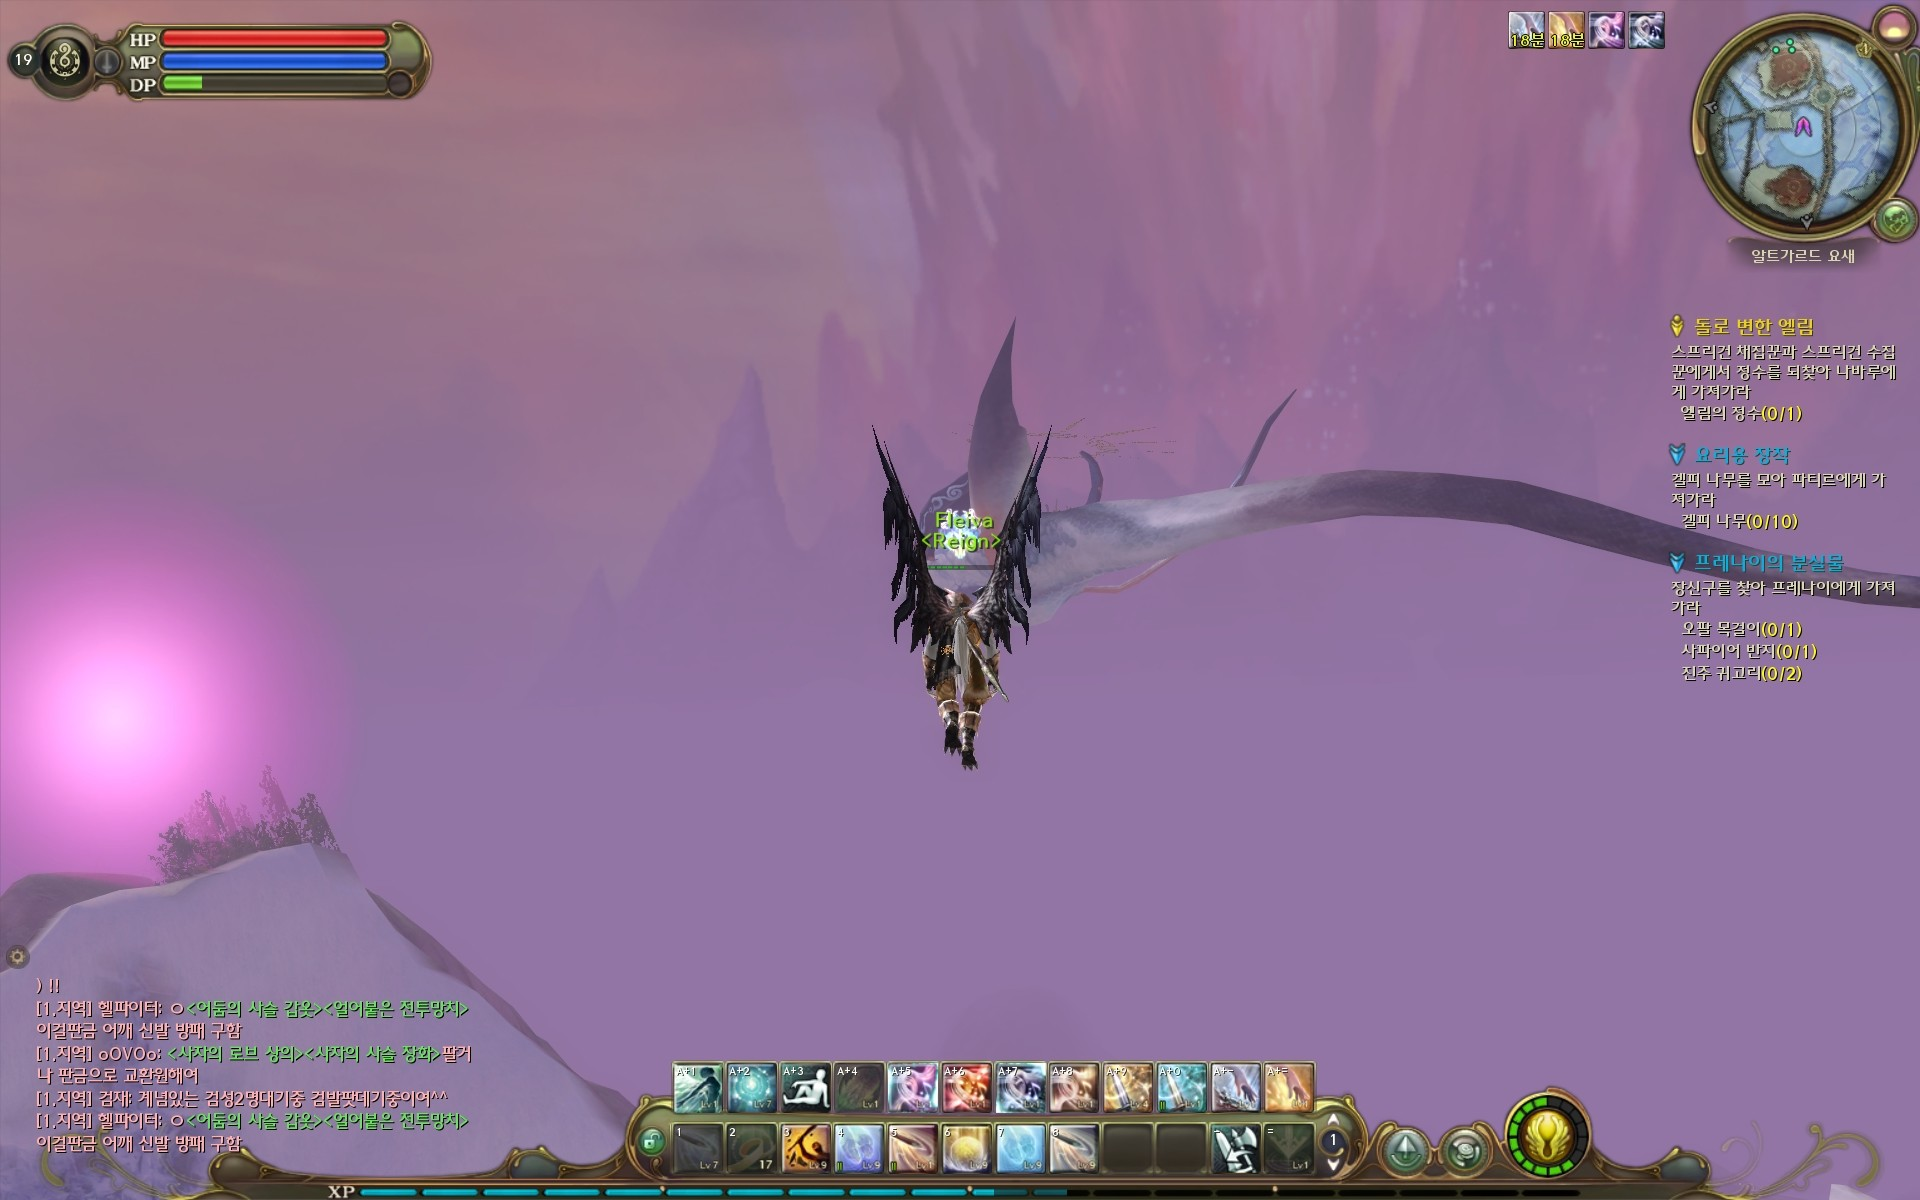 Aion - Flying creatures